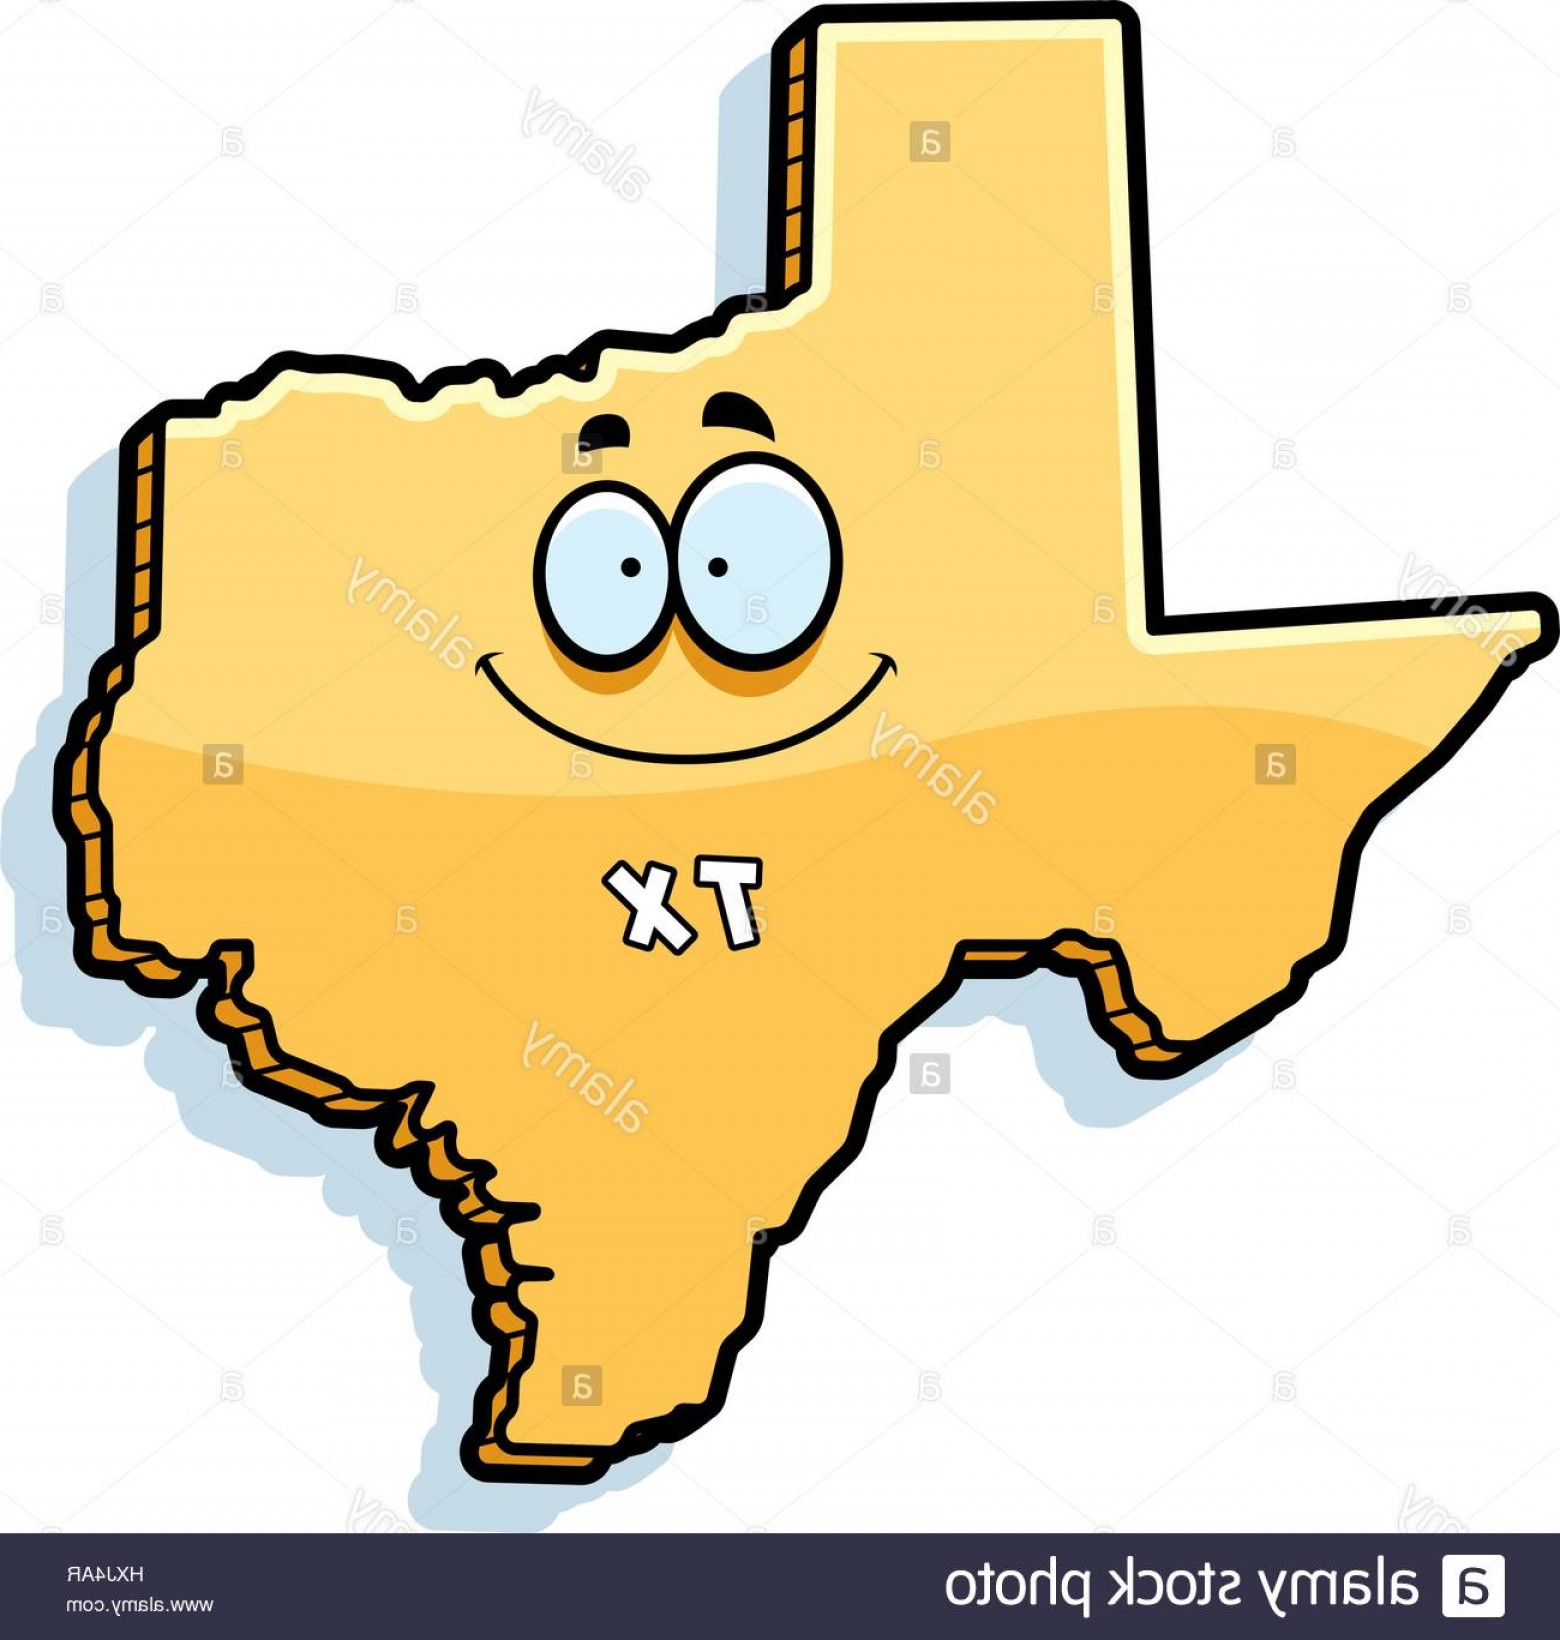 Texas Clip Art Vector: Stock Photo A Cartoon Illustration Of The State Of Texas Smiling